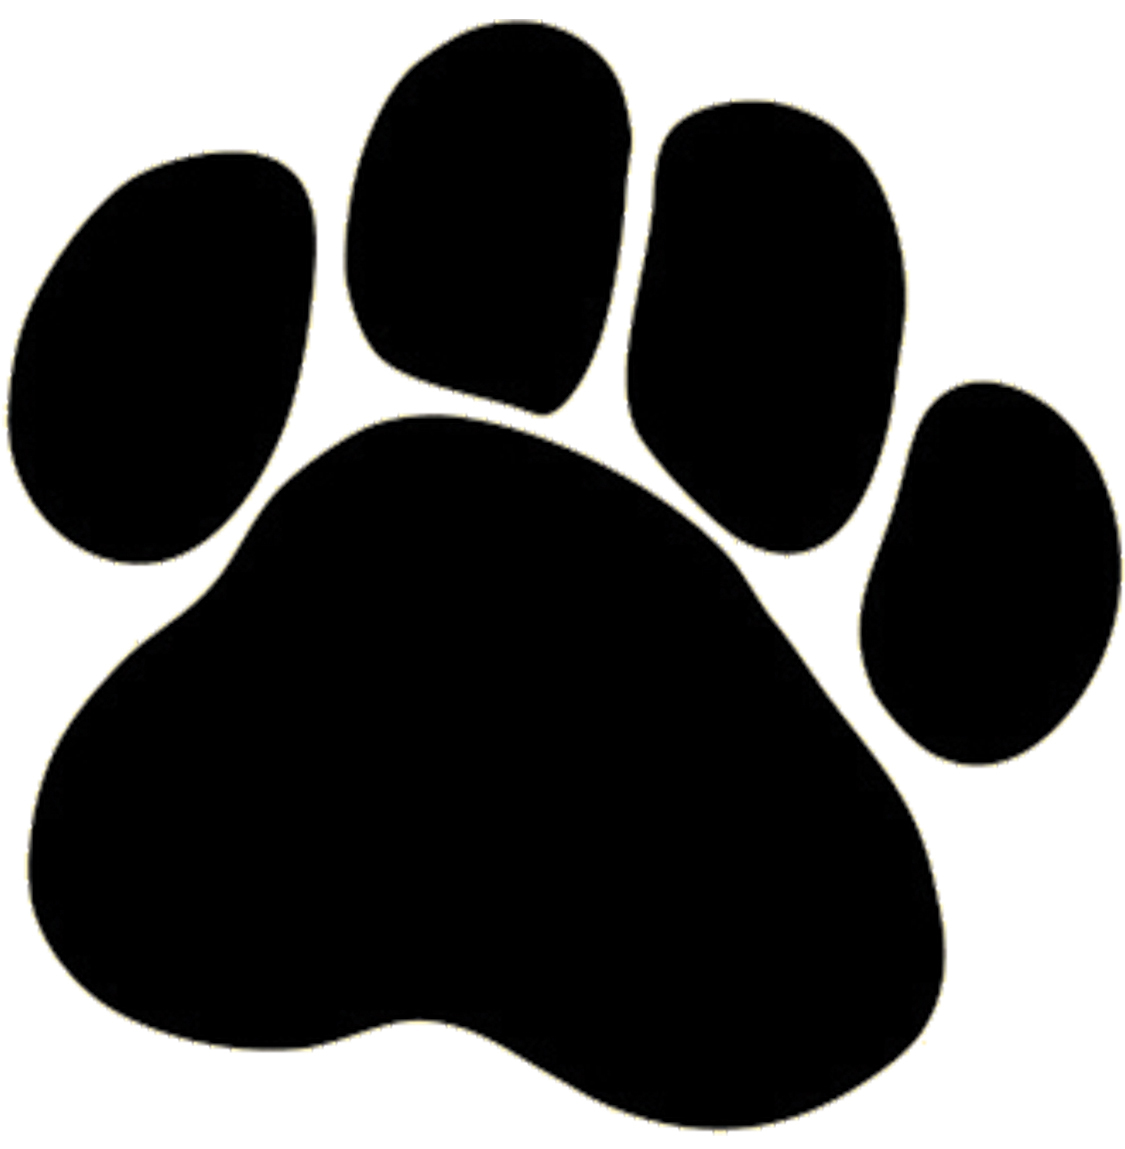 Clip Art Dog Paw Print - Cliparts.co